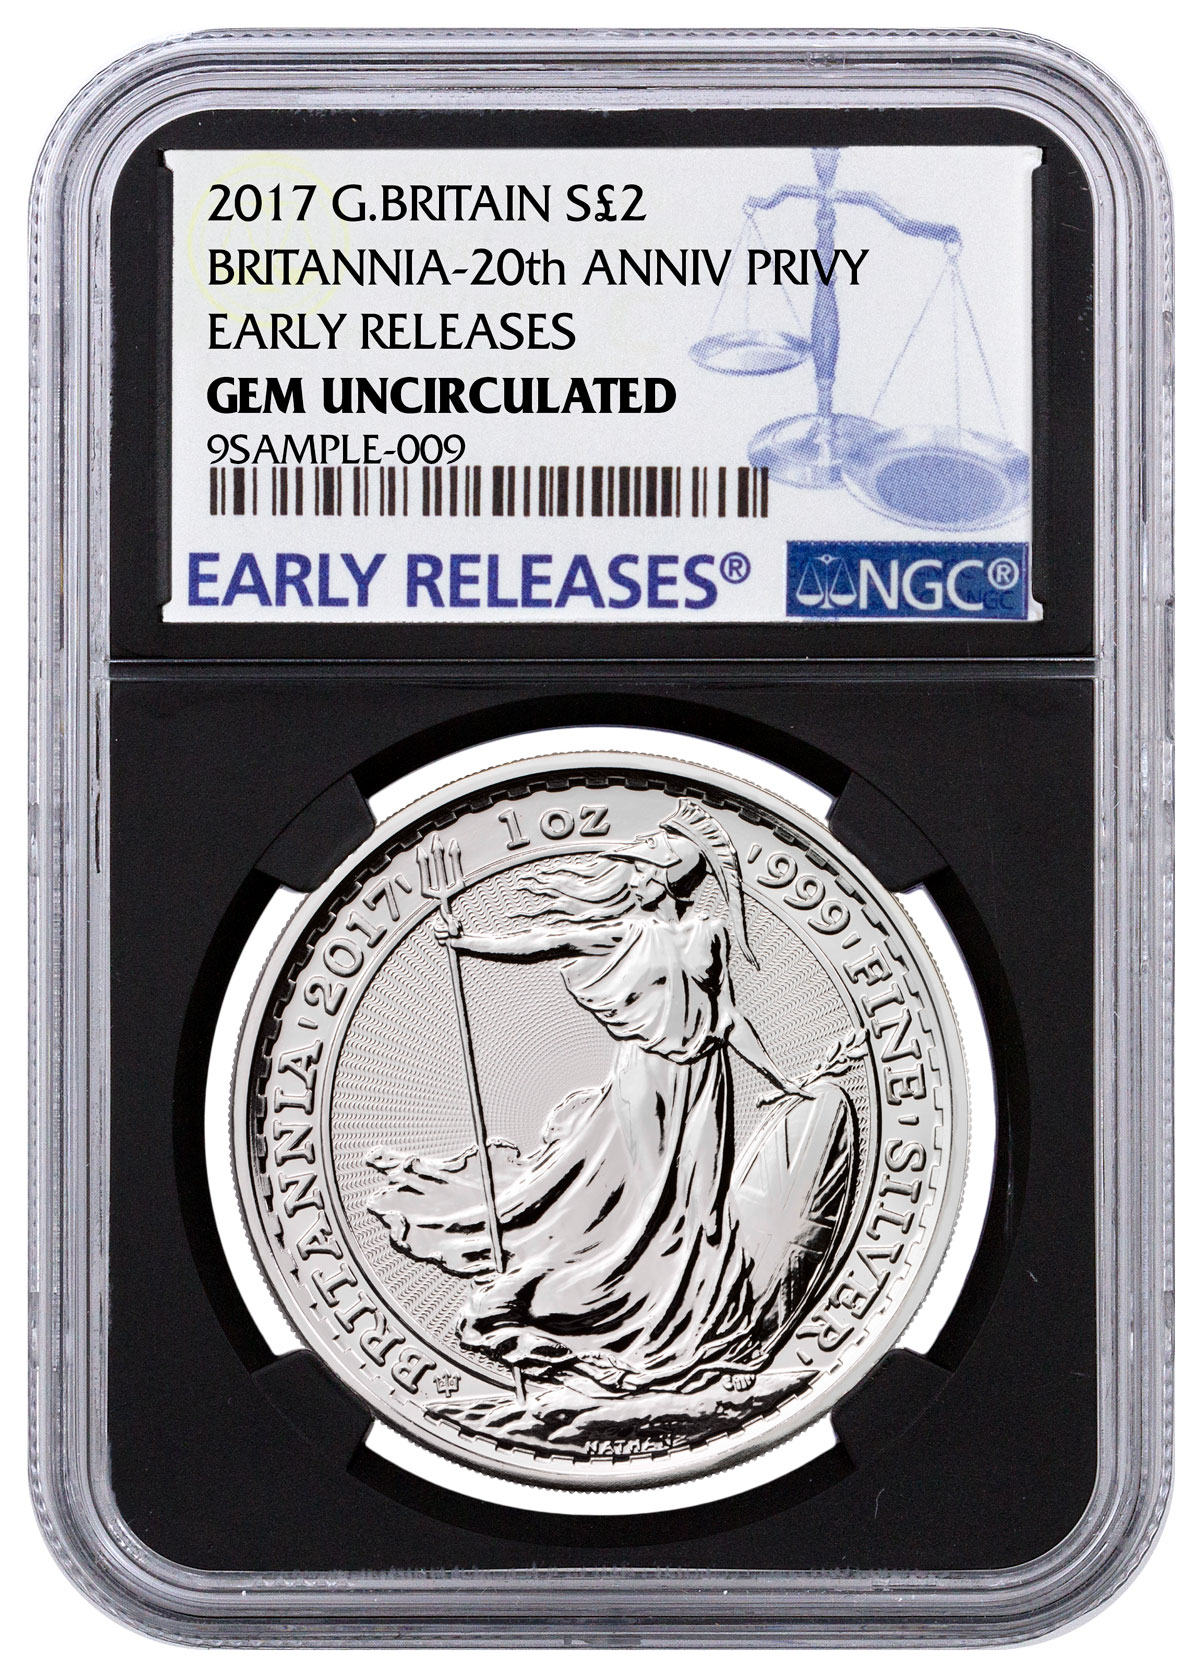 2017 Great Britain 1 oz Silver Britannia - 20th Anniversary Trident Privy £2 NGC GEM Uncirculated ER ER (Black Core Holder)